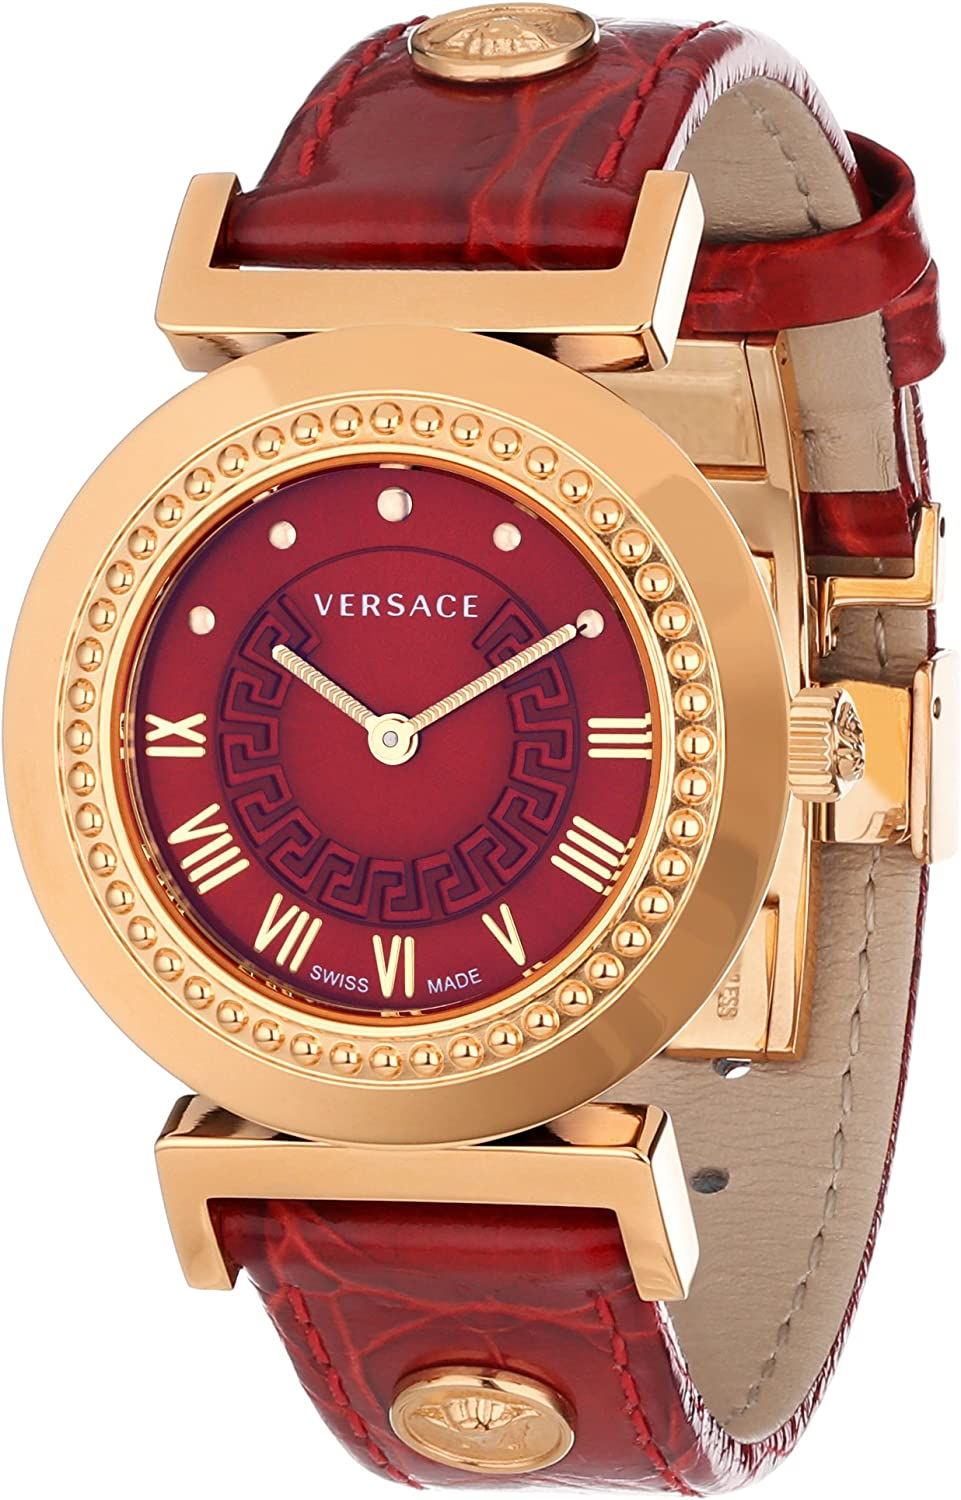 Versace Women s P5Q80D800 S800 Vanity Rose Gold Ion-Plated Stainless Steel Watch with Leather Band